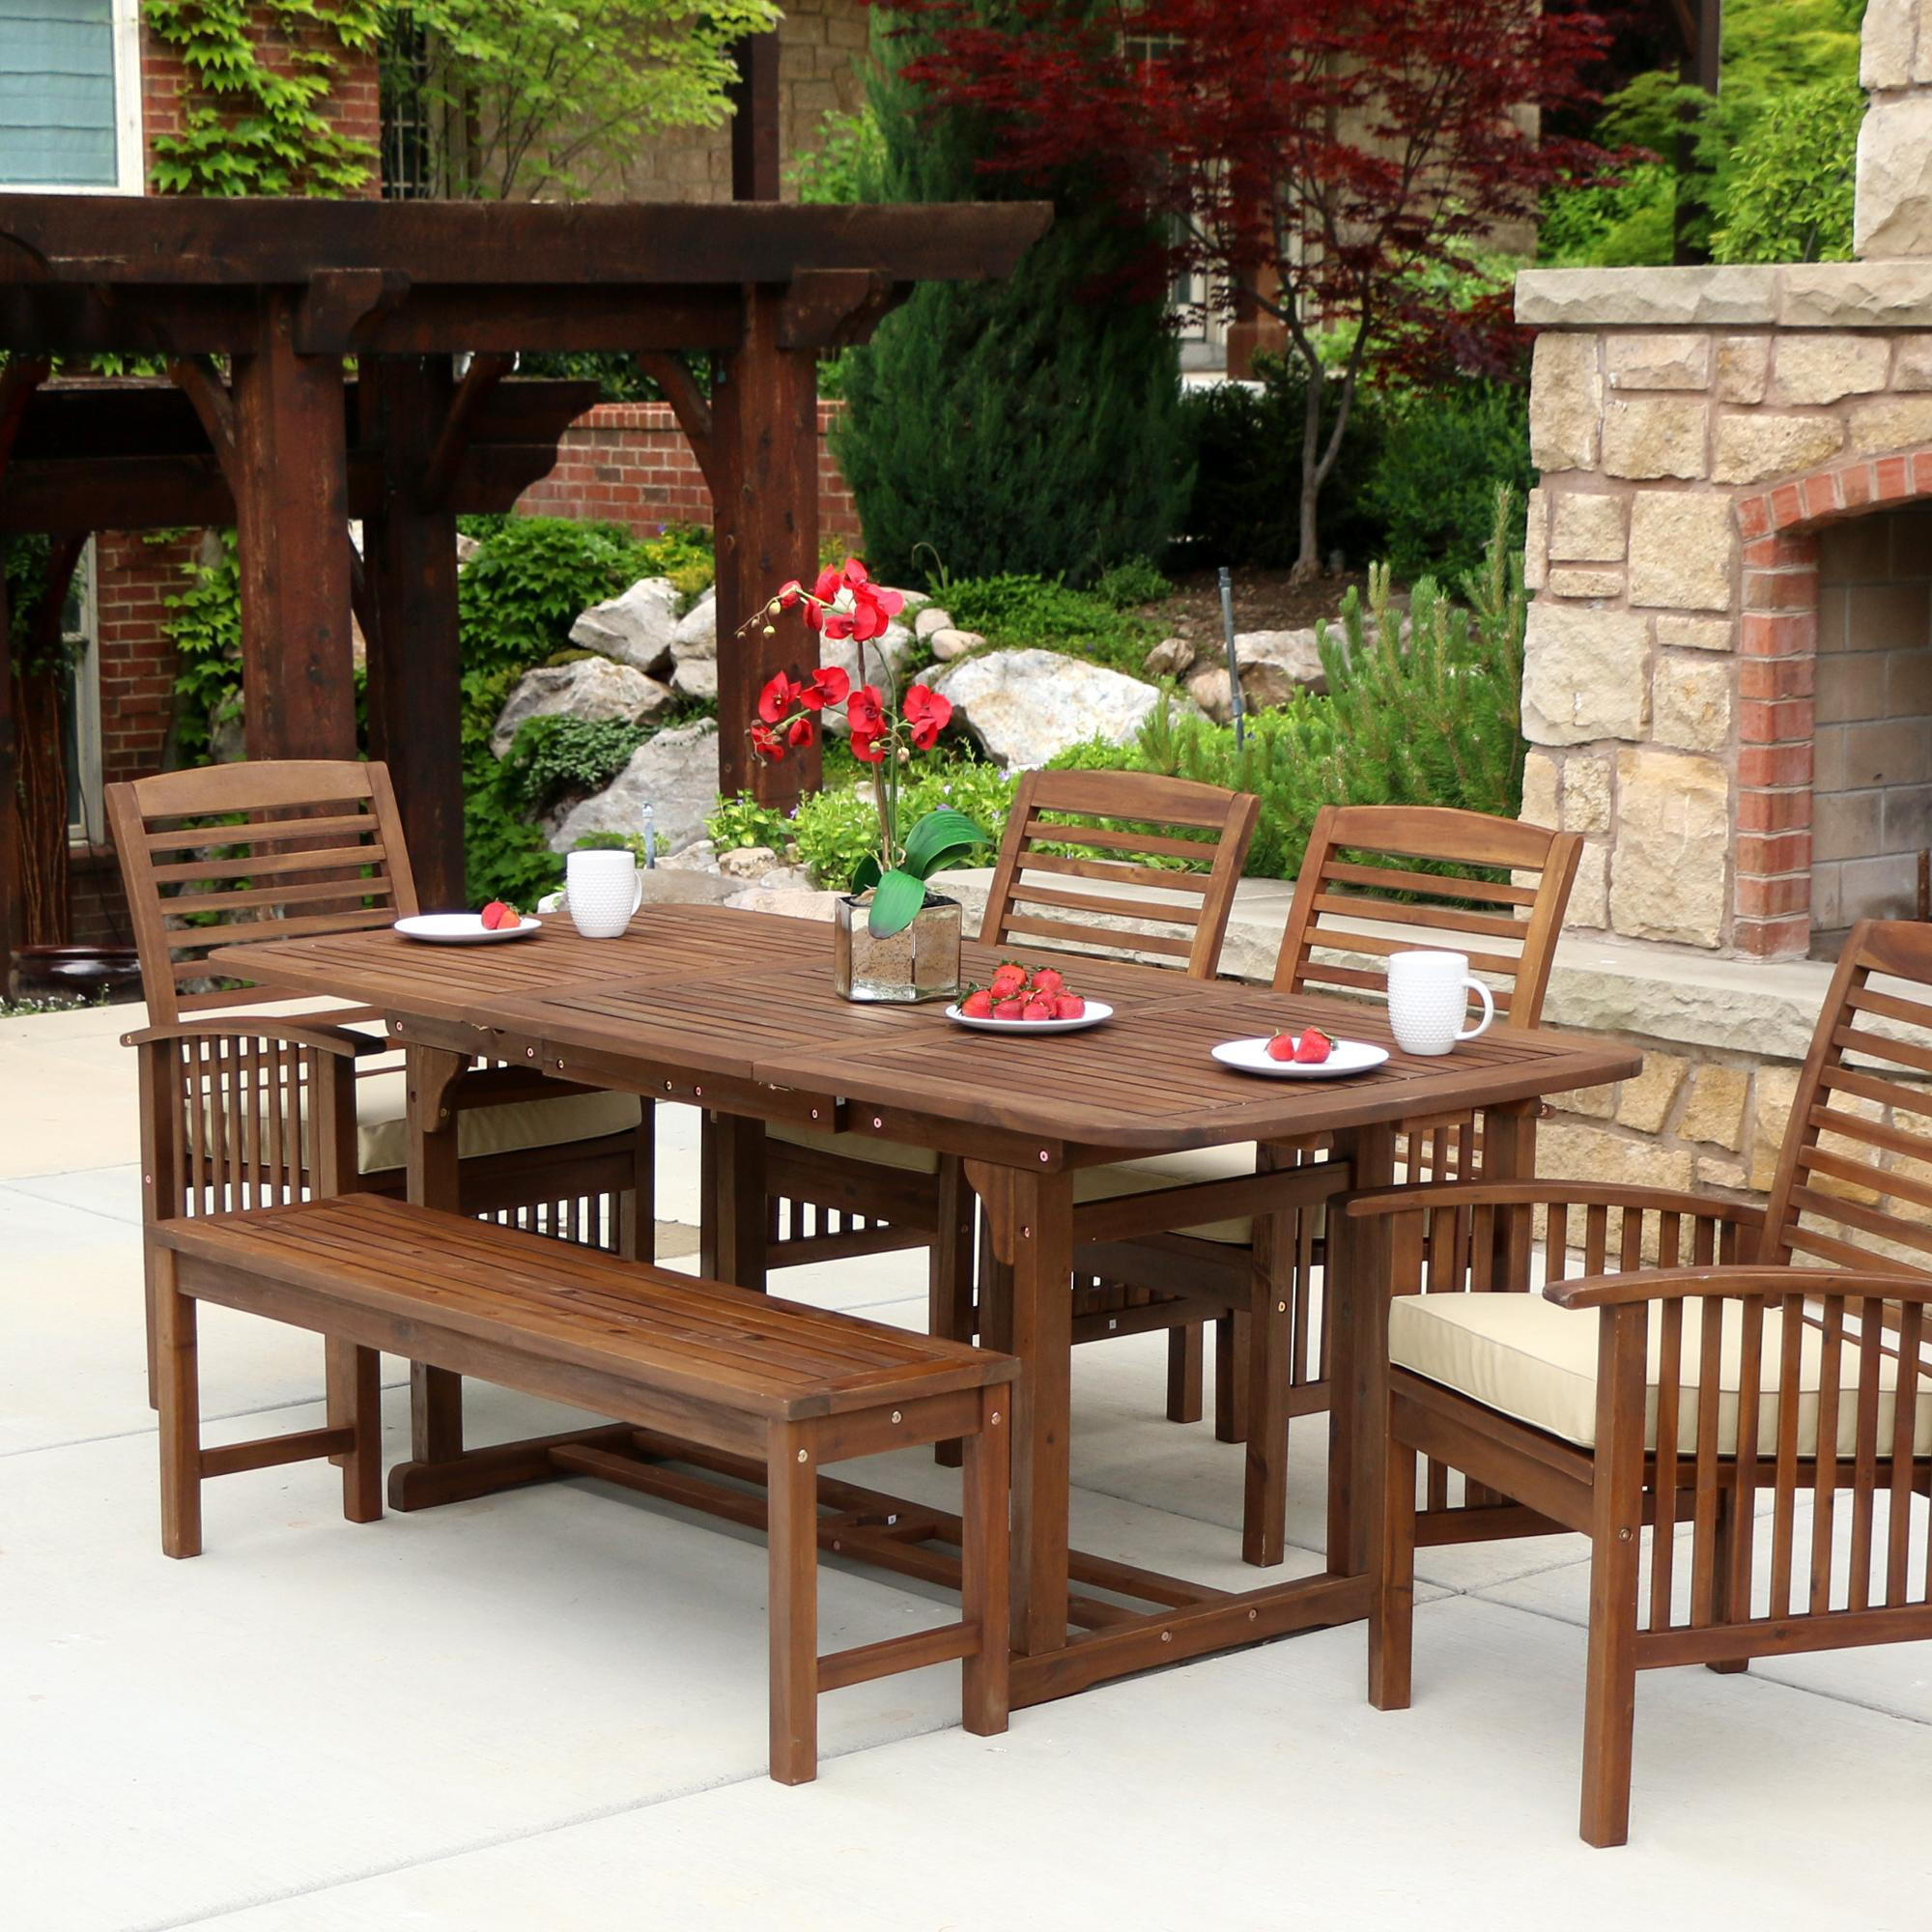 Best ideas about Wooden Patio Furniture . Save or Pin Amazon WE Furniture Solid Acacia Wood 6 Piece Patio Now.